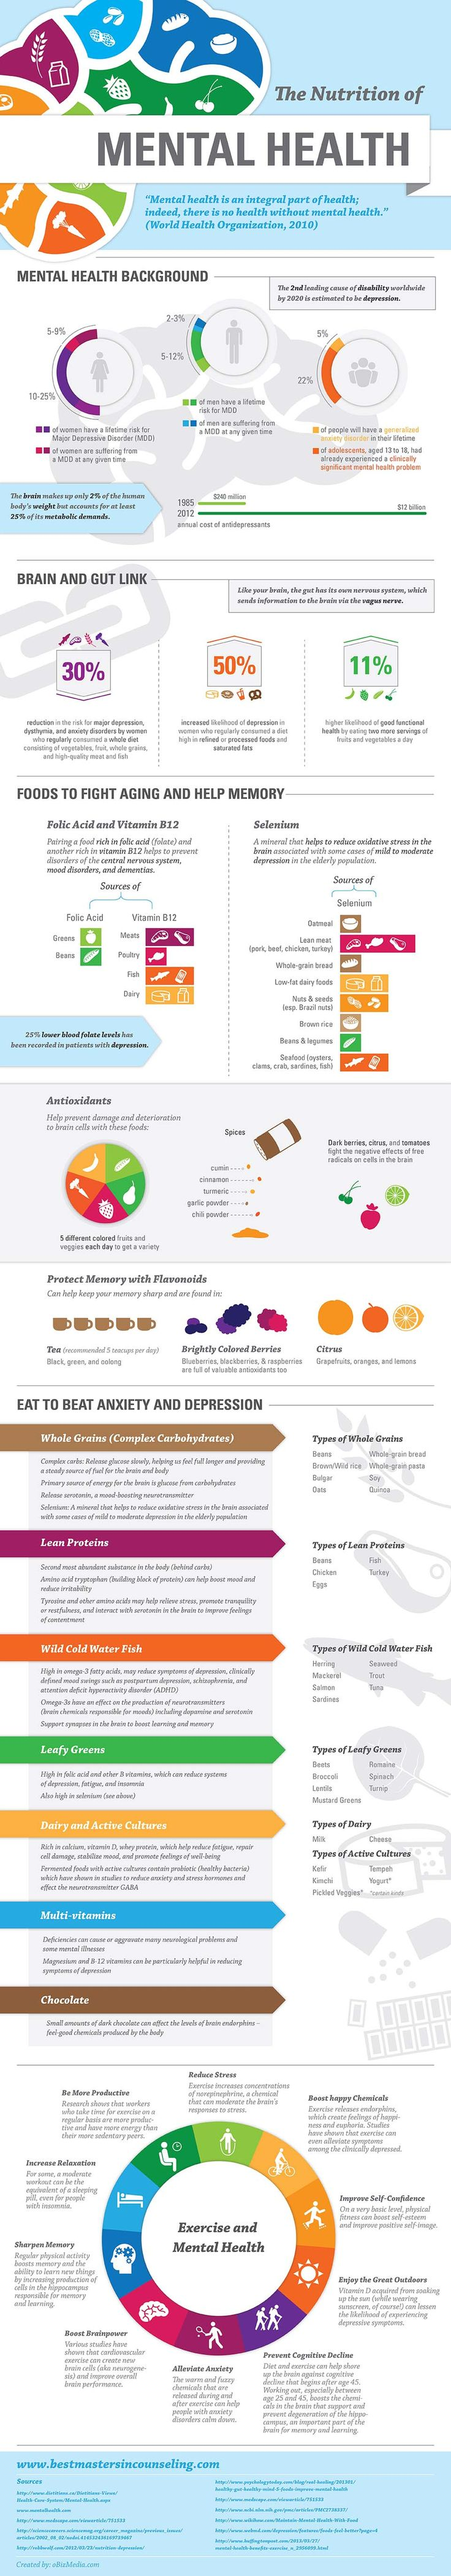 An Interesting Infographic On Food And Mental Health